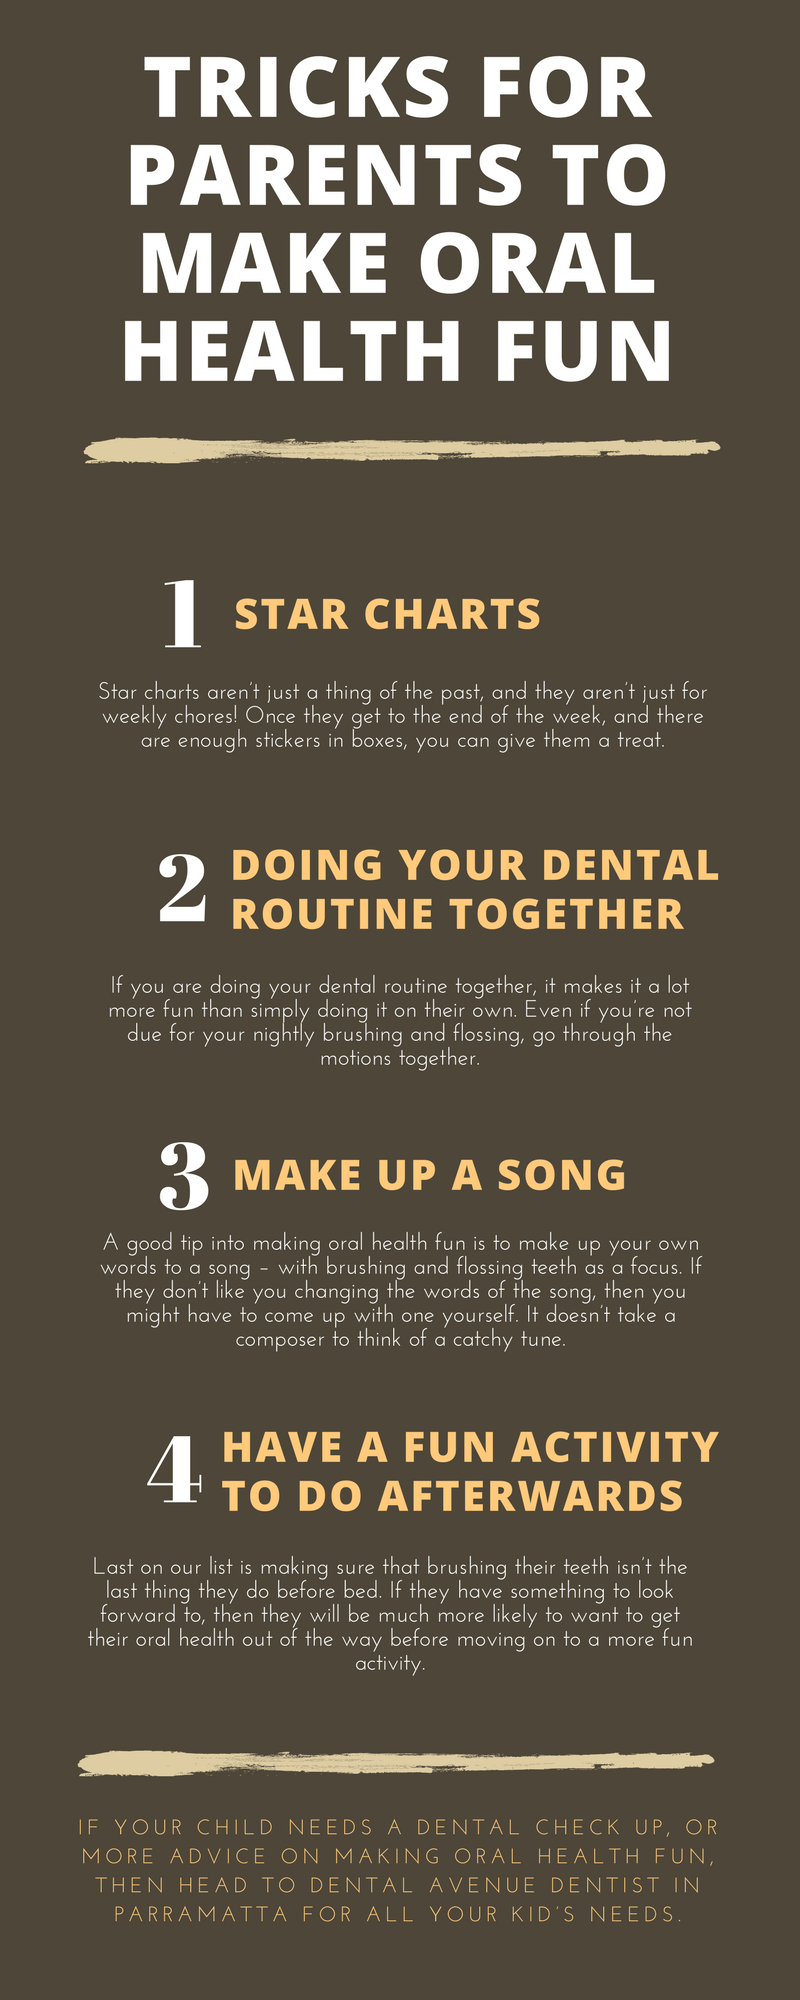 Tricks for Parents to Use in Making Oral Health Fun